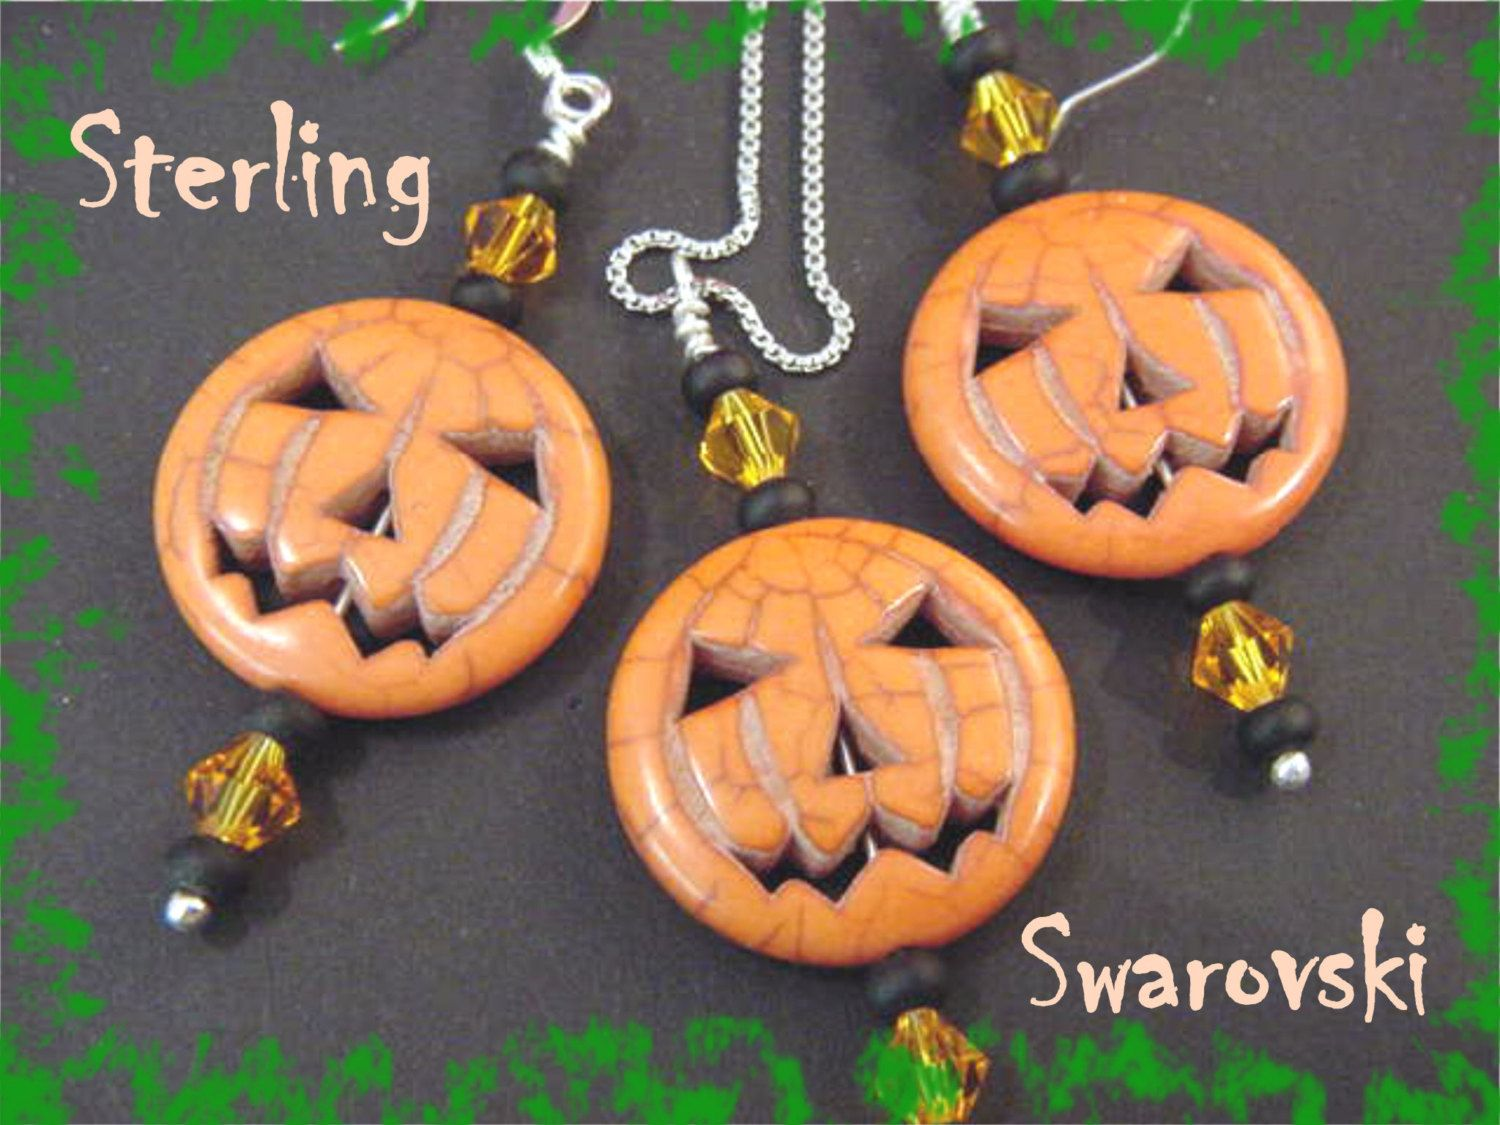 Happy Halloween - Jack O Lantern Pumpkin Sterling Silver Necklace & Earrings - Swarovski Crystals - 20